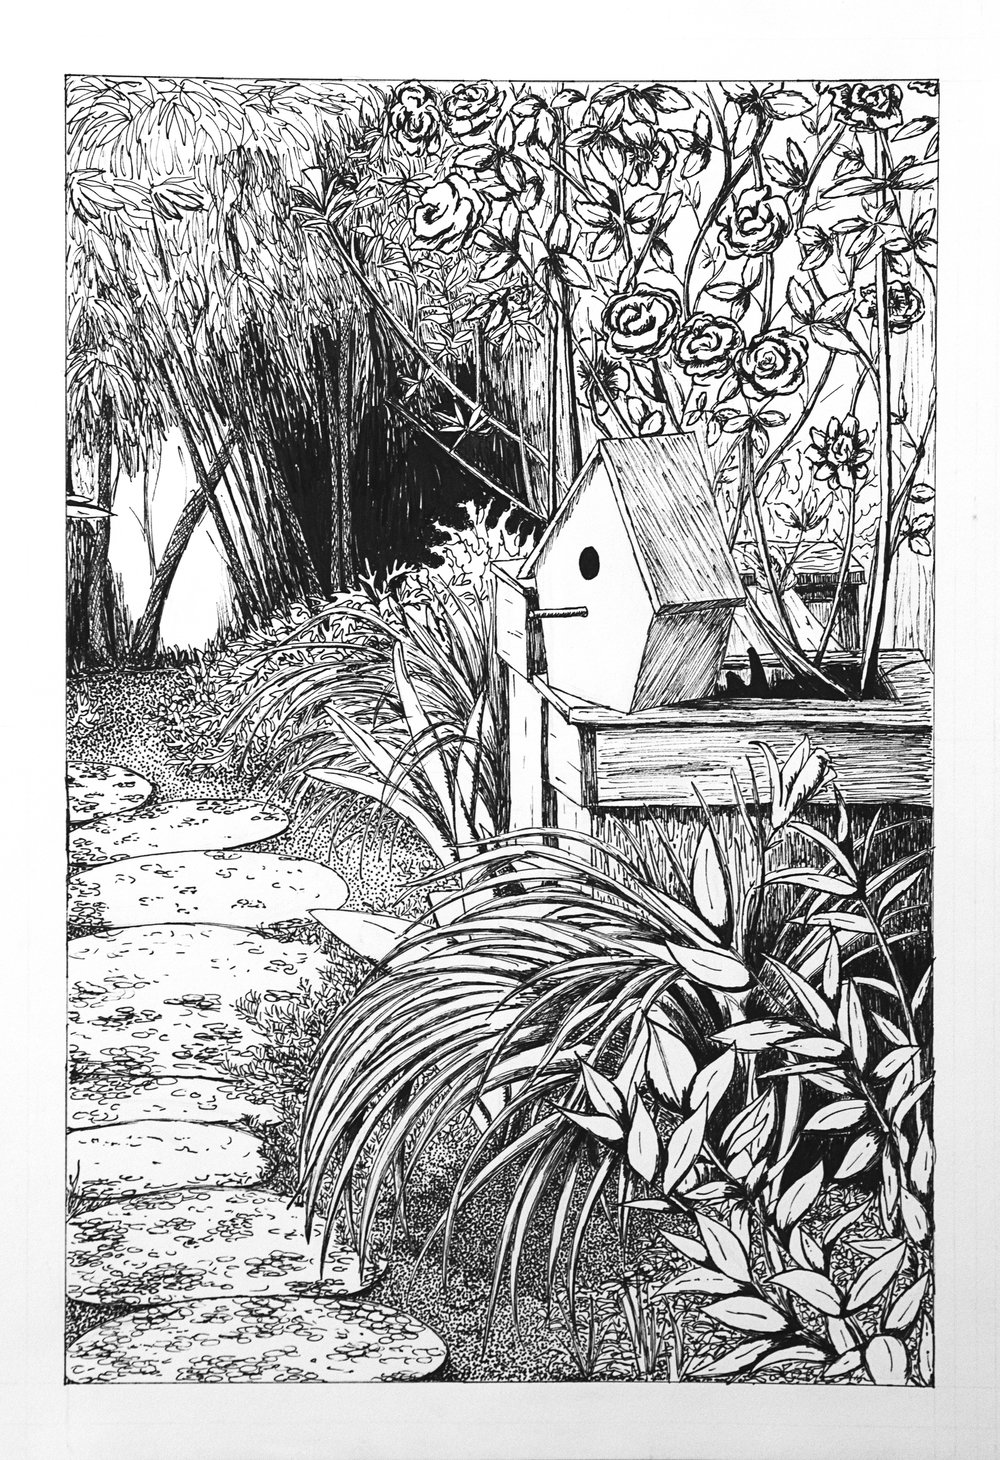 """The Garden""  Ink pens on paper 12x18"" November 2012"